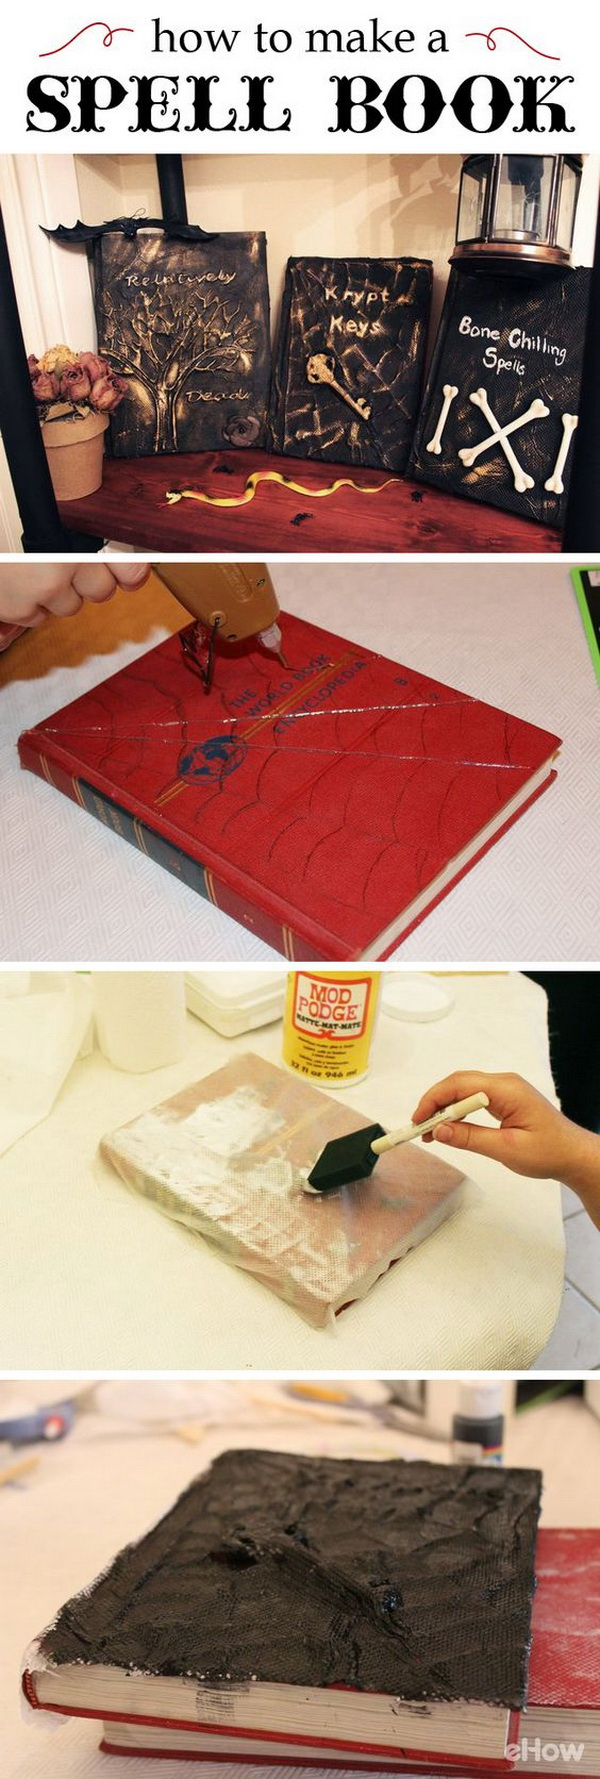 DIY Spell Book for Halloweeen.